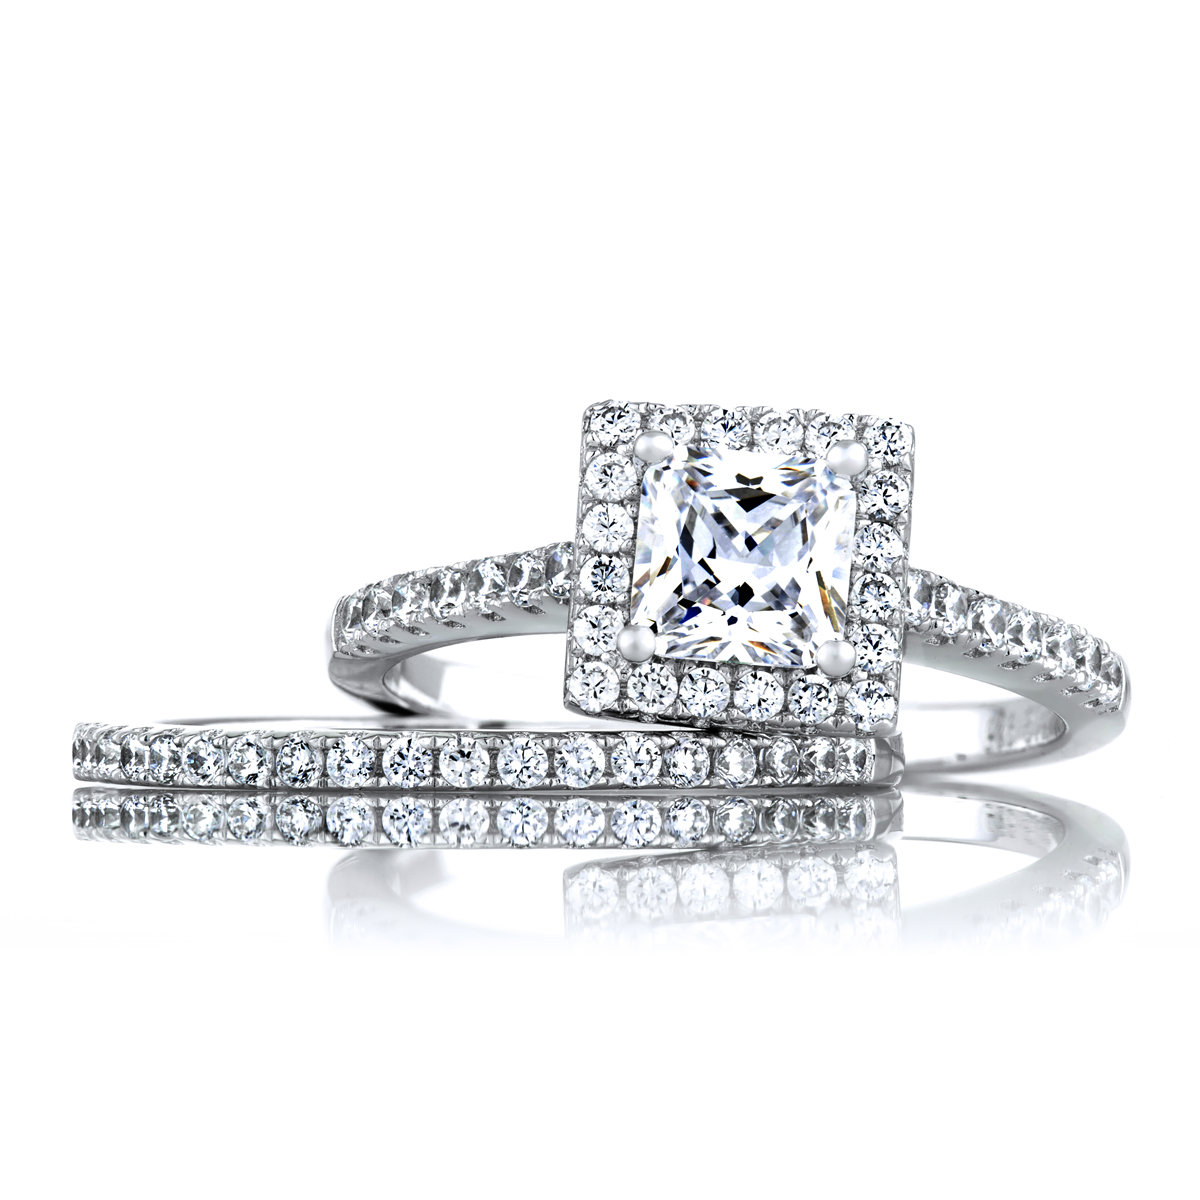 1.24ct princess cut halo cz wedding ring set